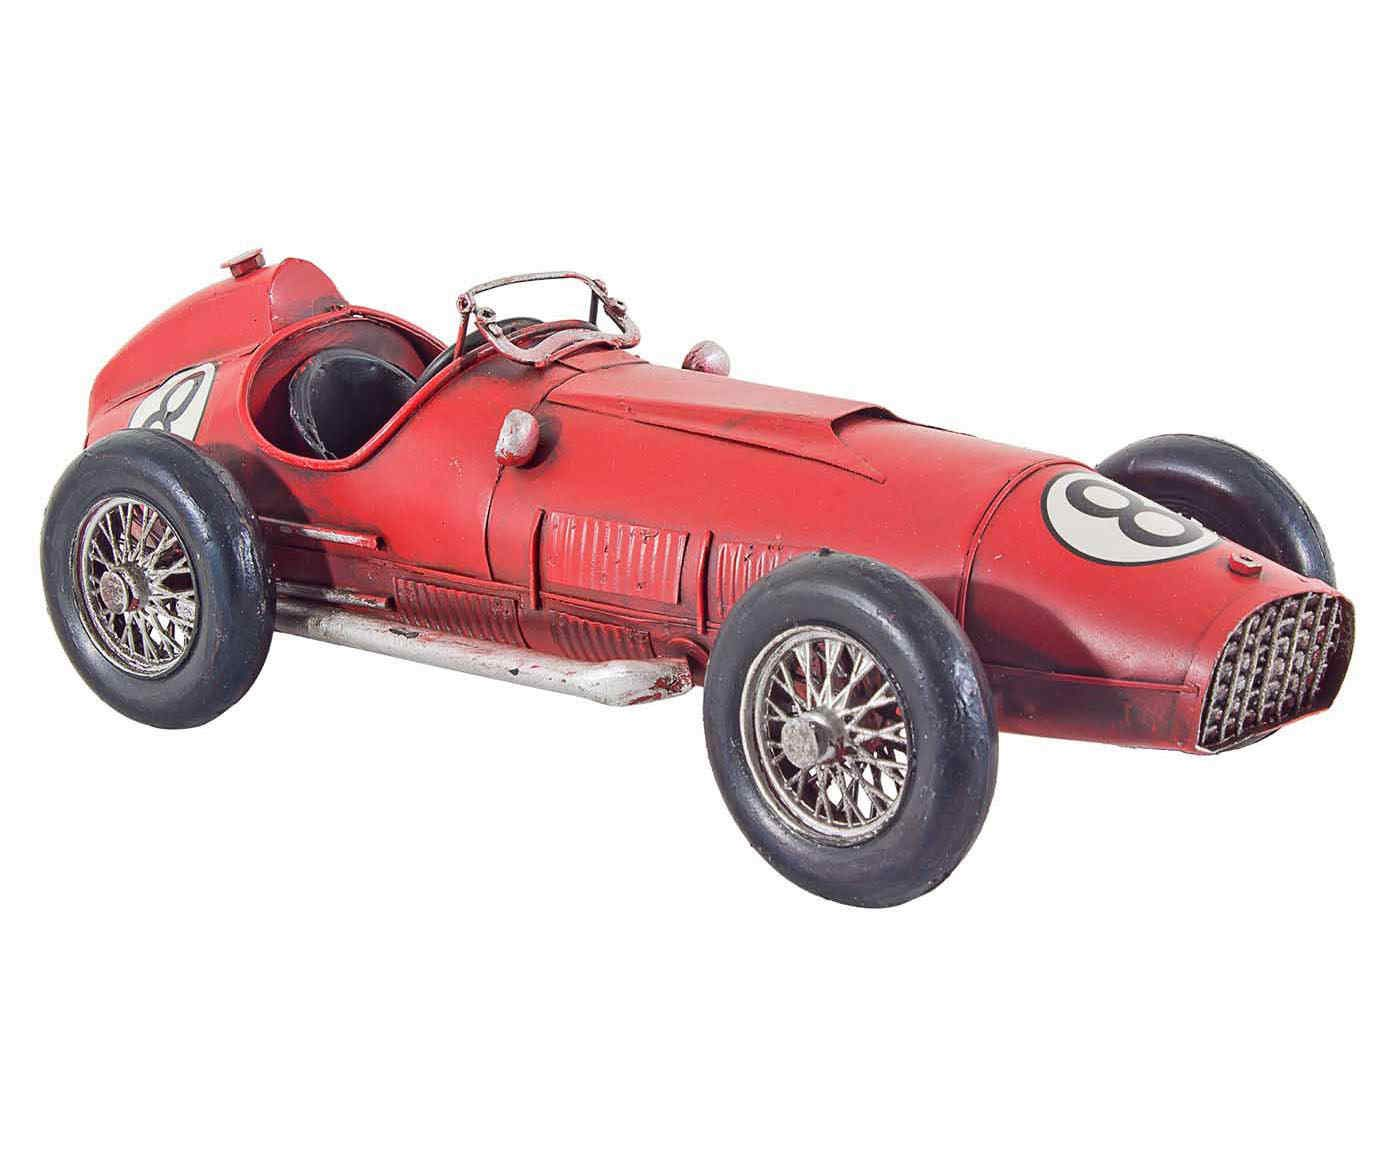 Miniatura Speed Car Oldway   Westwing.com.br